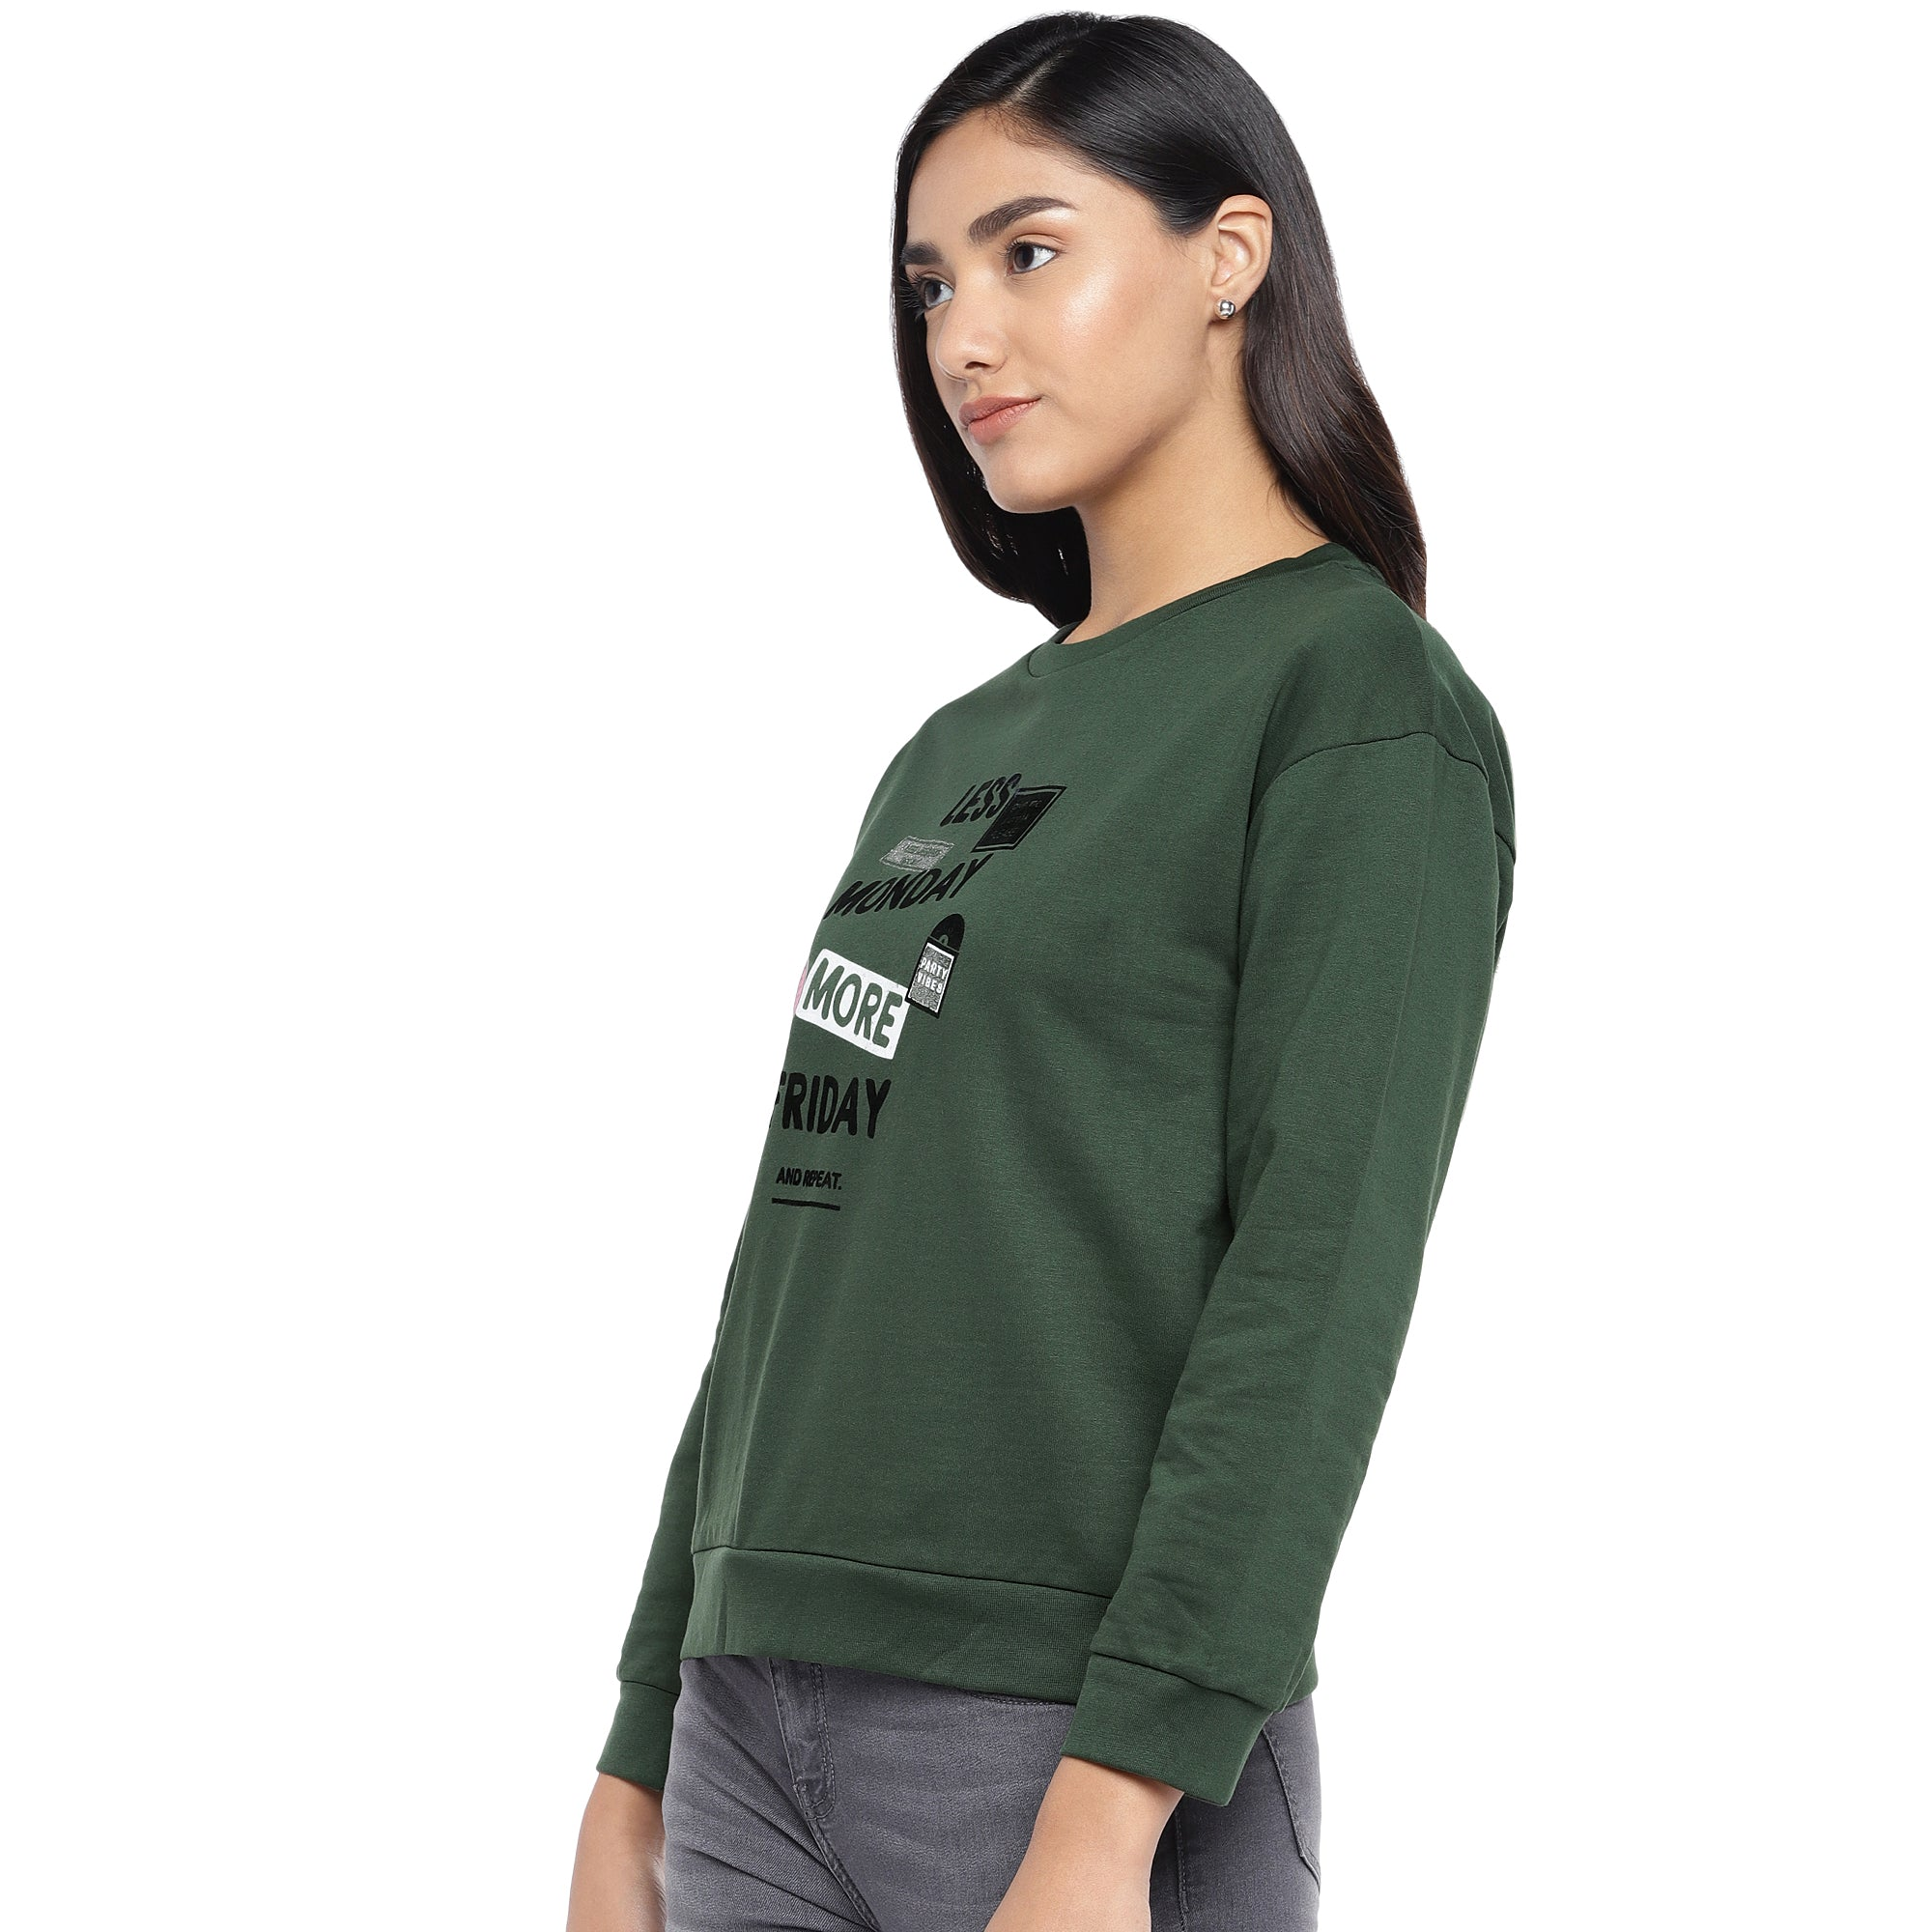 Olive Green & Black Printed Sweatshirt-2